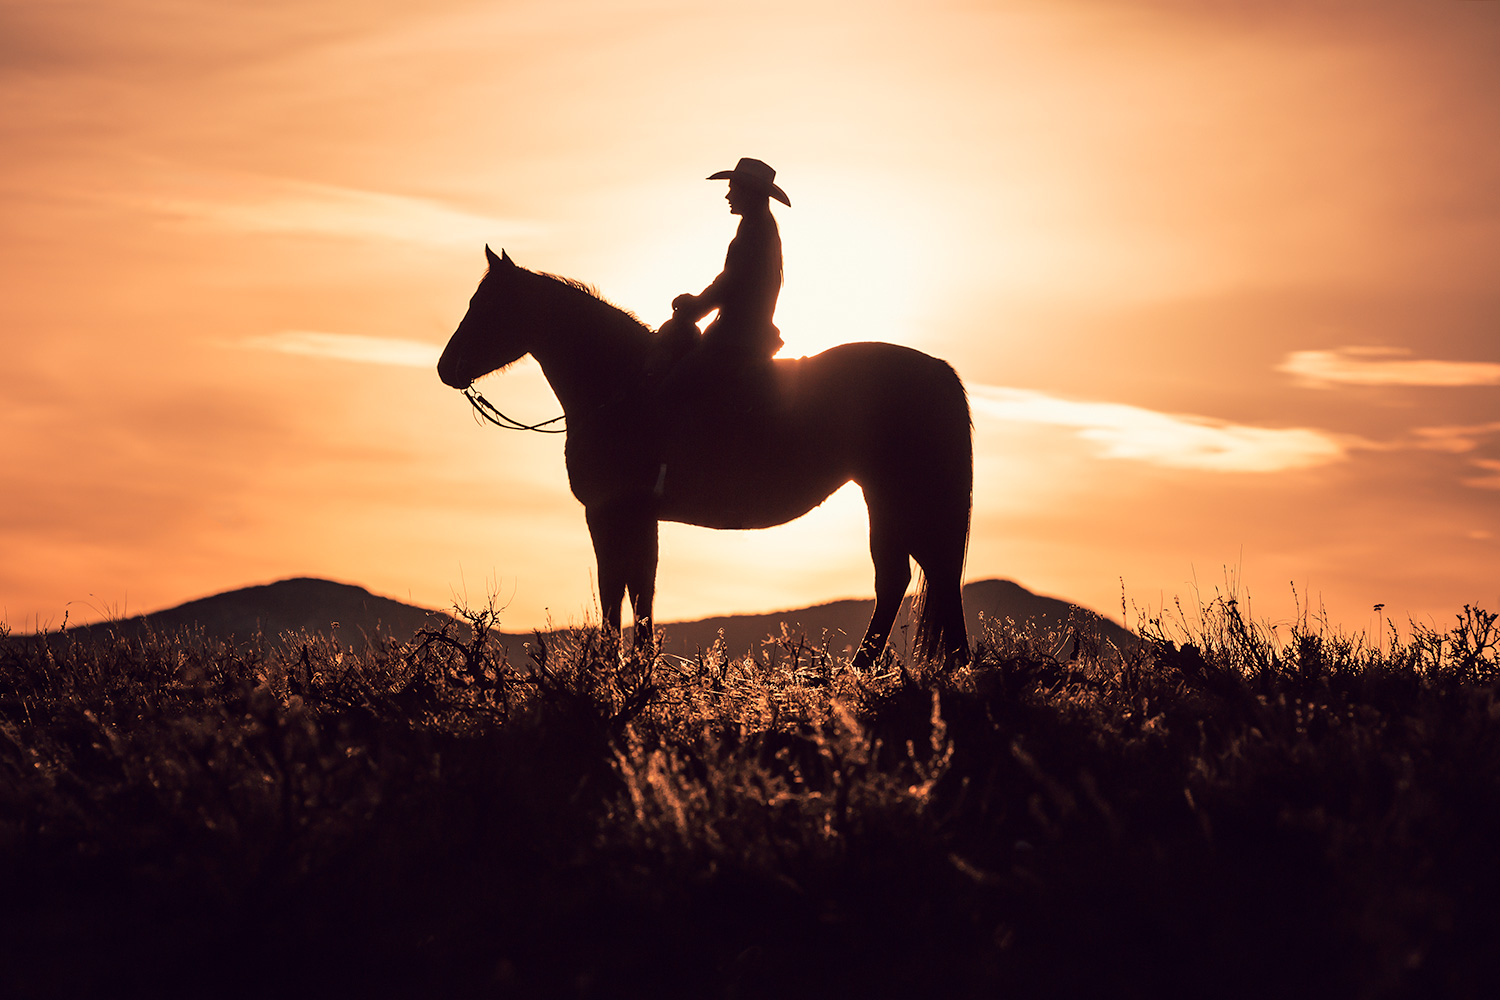 Sunlit Cowgirl